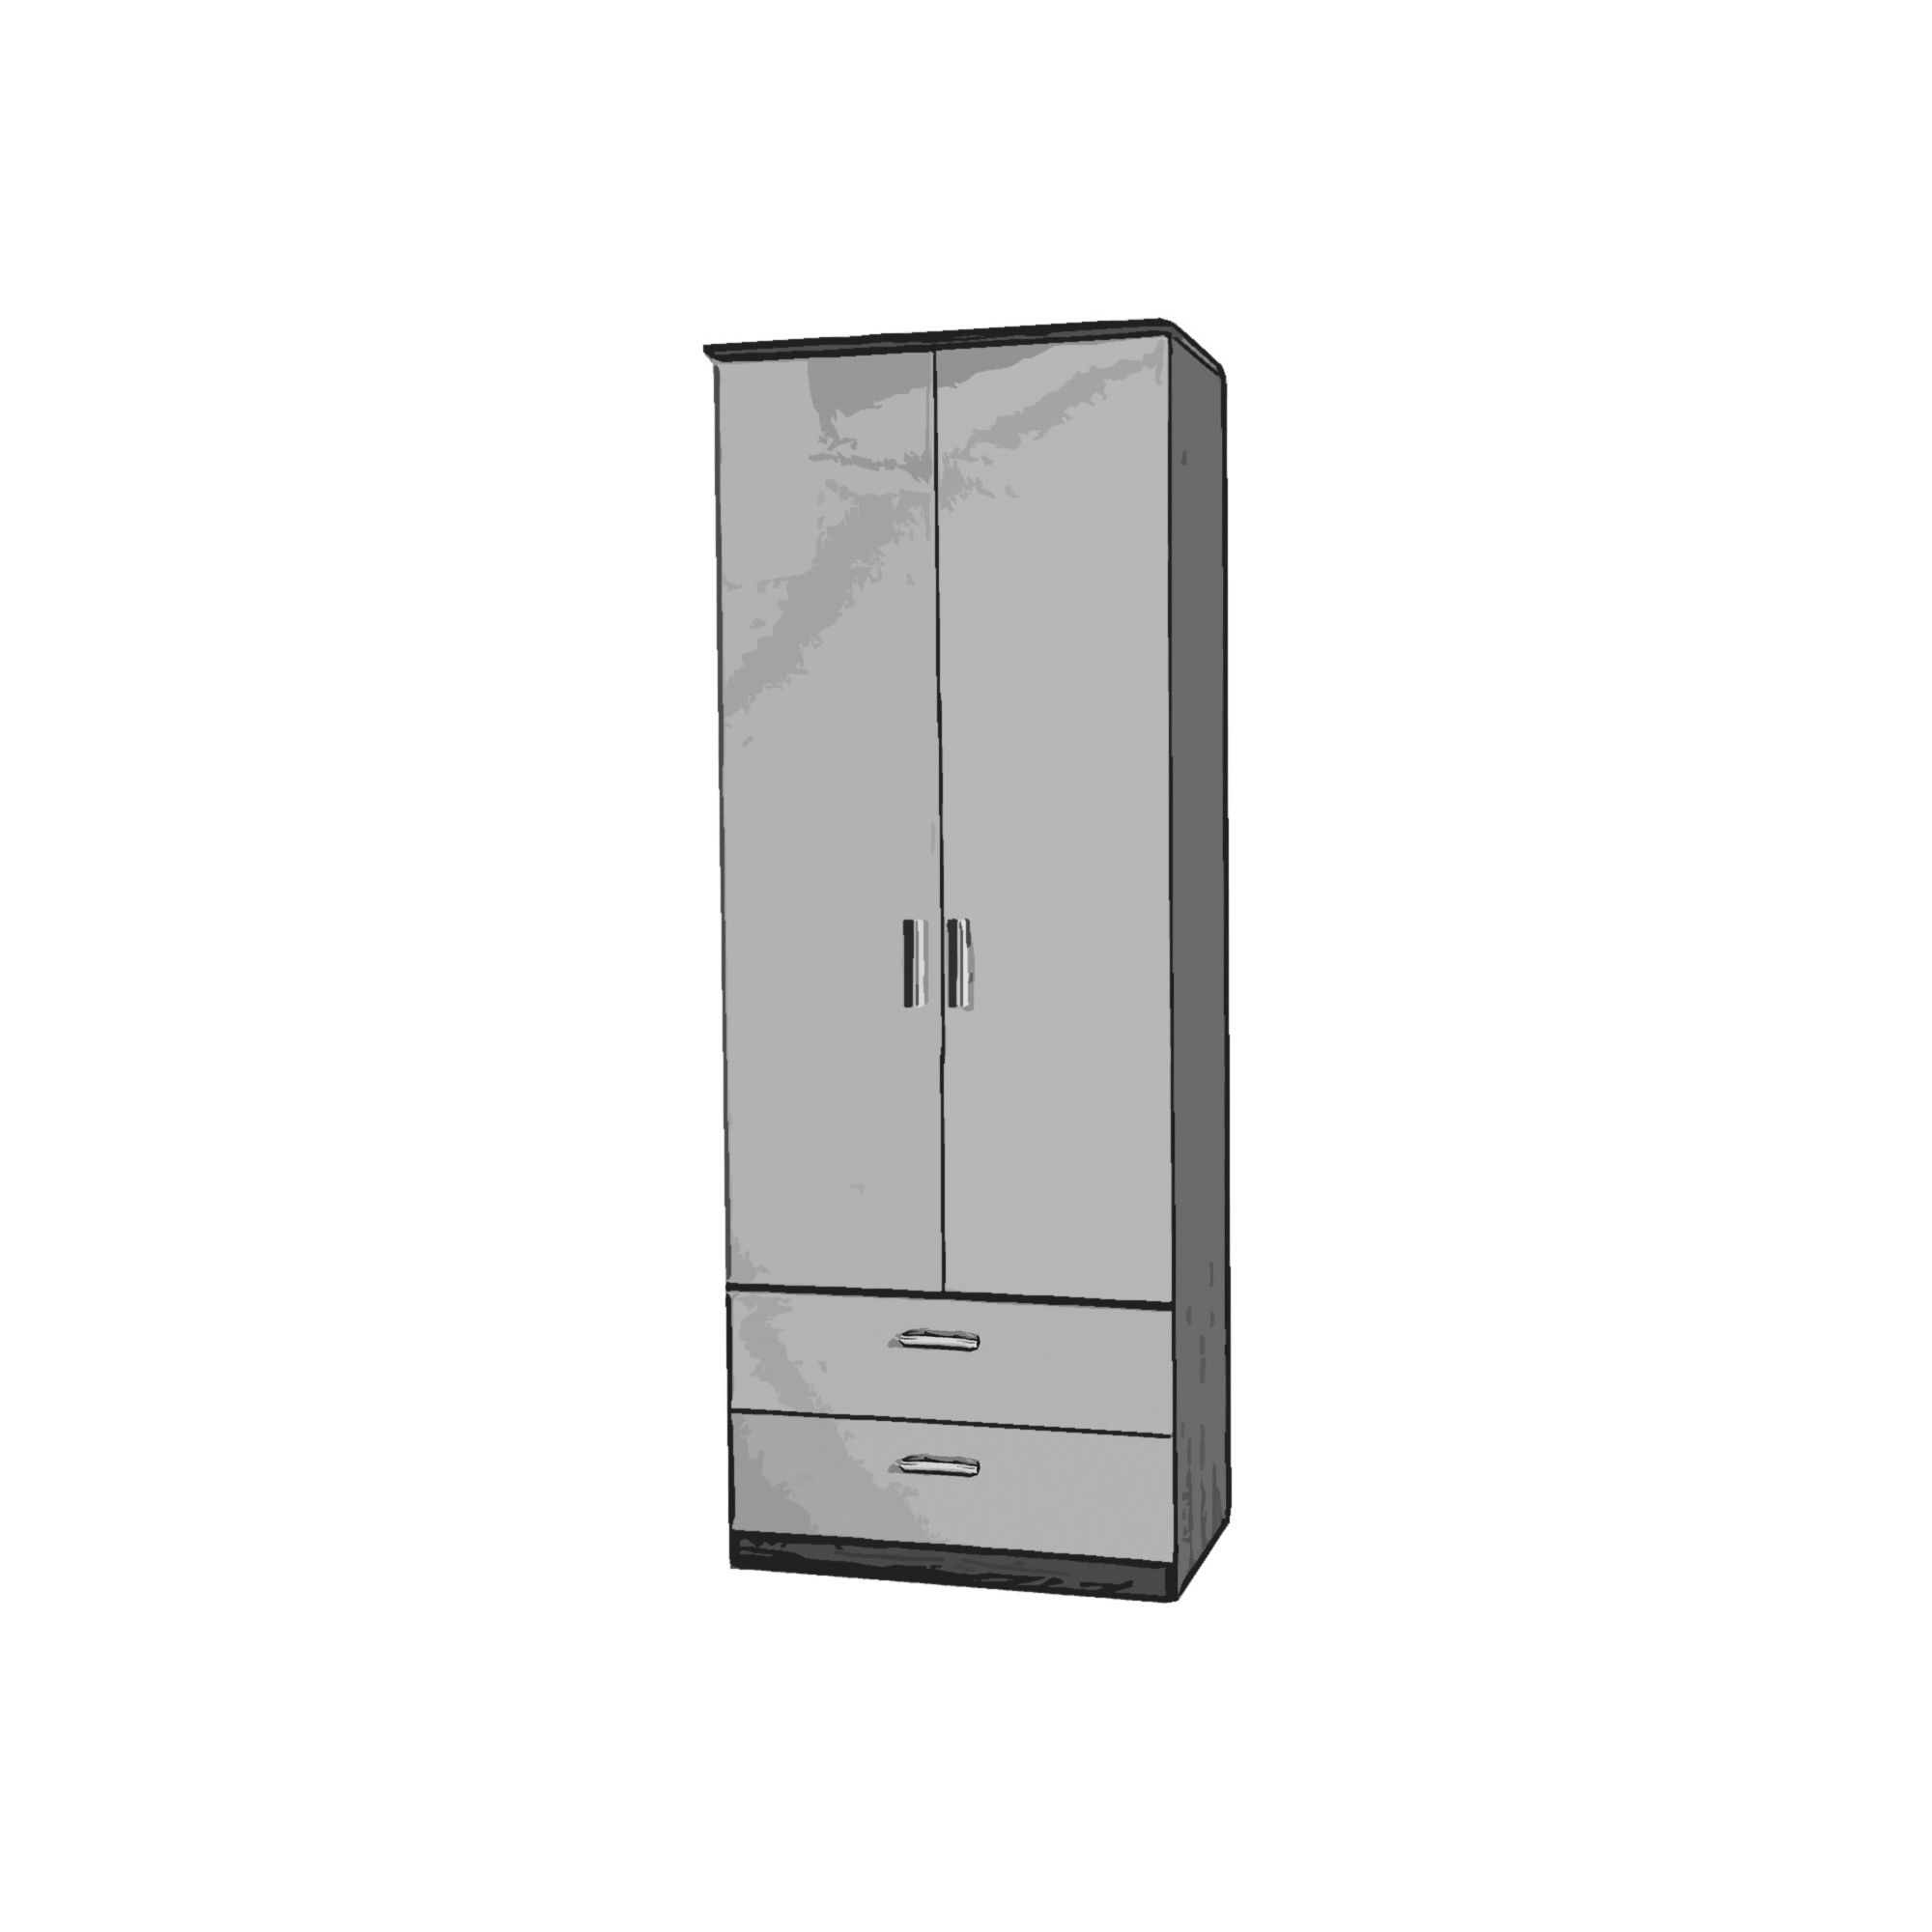 Welcome Furniture Mayfair Tall Wardrobe with 2 Drawers - Aubergine - Black - Cream at Tesco Direct